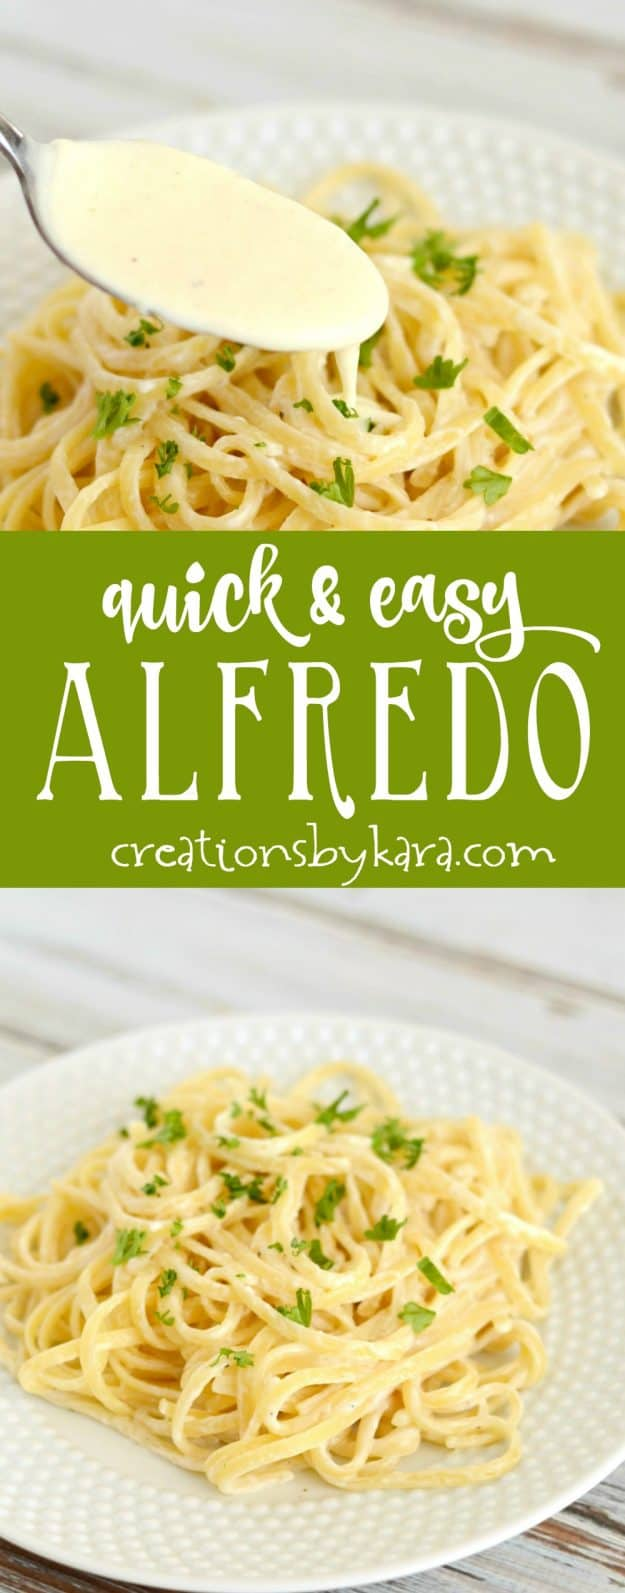 Quick and easy Alfredo Sauce. This simple alfredo sauce is a perfect last minute dinner recipe. Serve it as is, or add grilled chicken or shrimp!